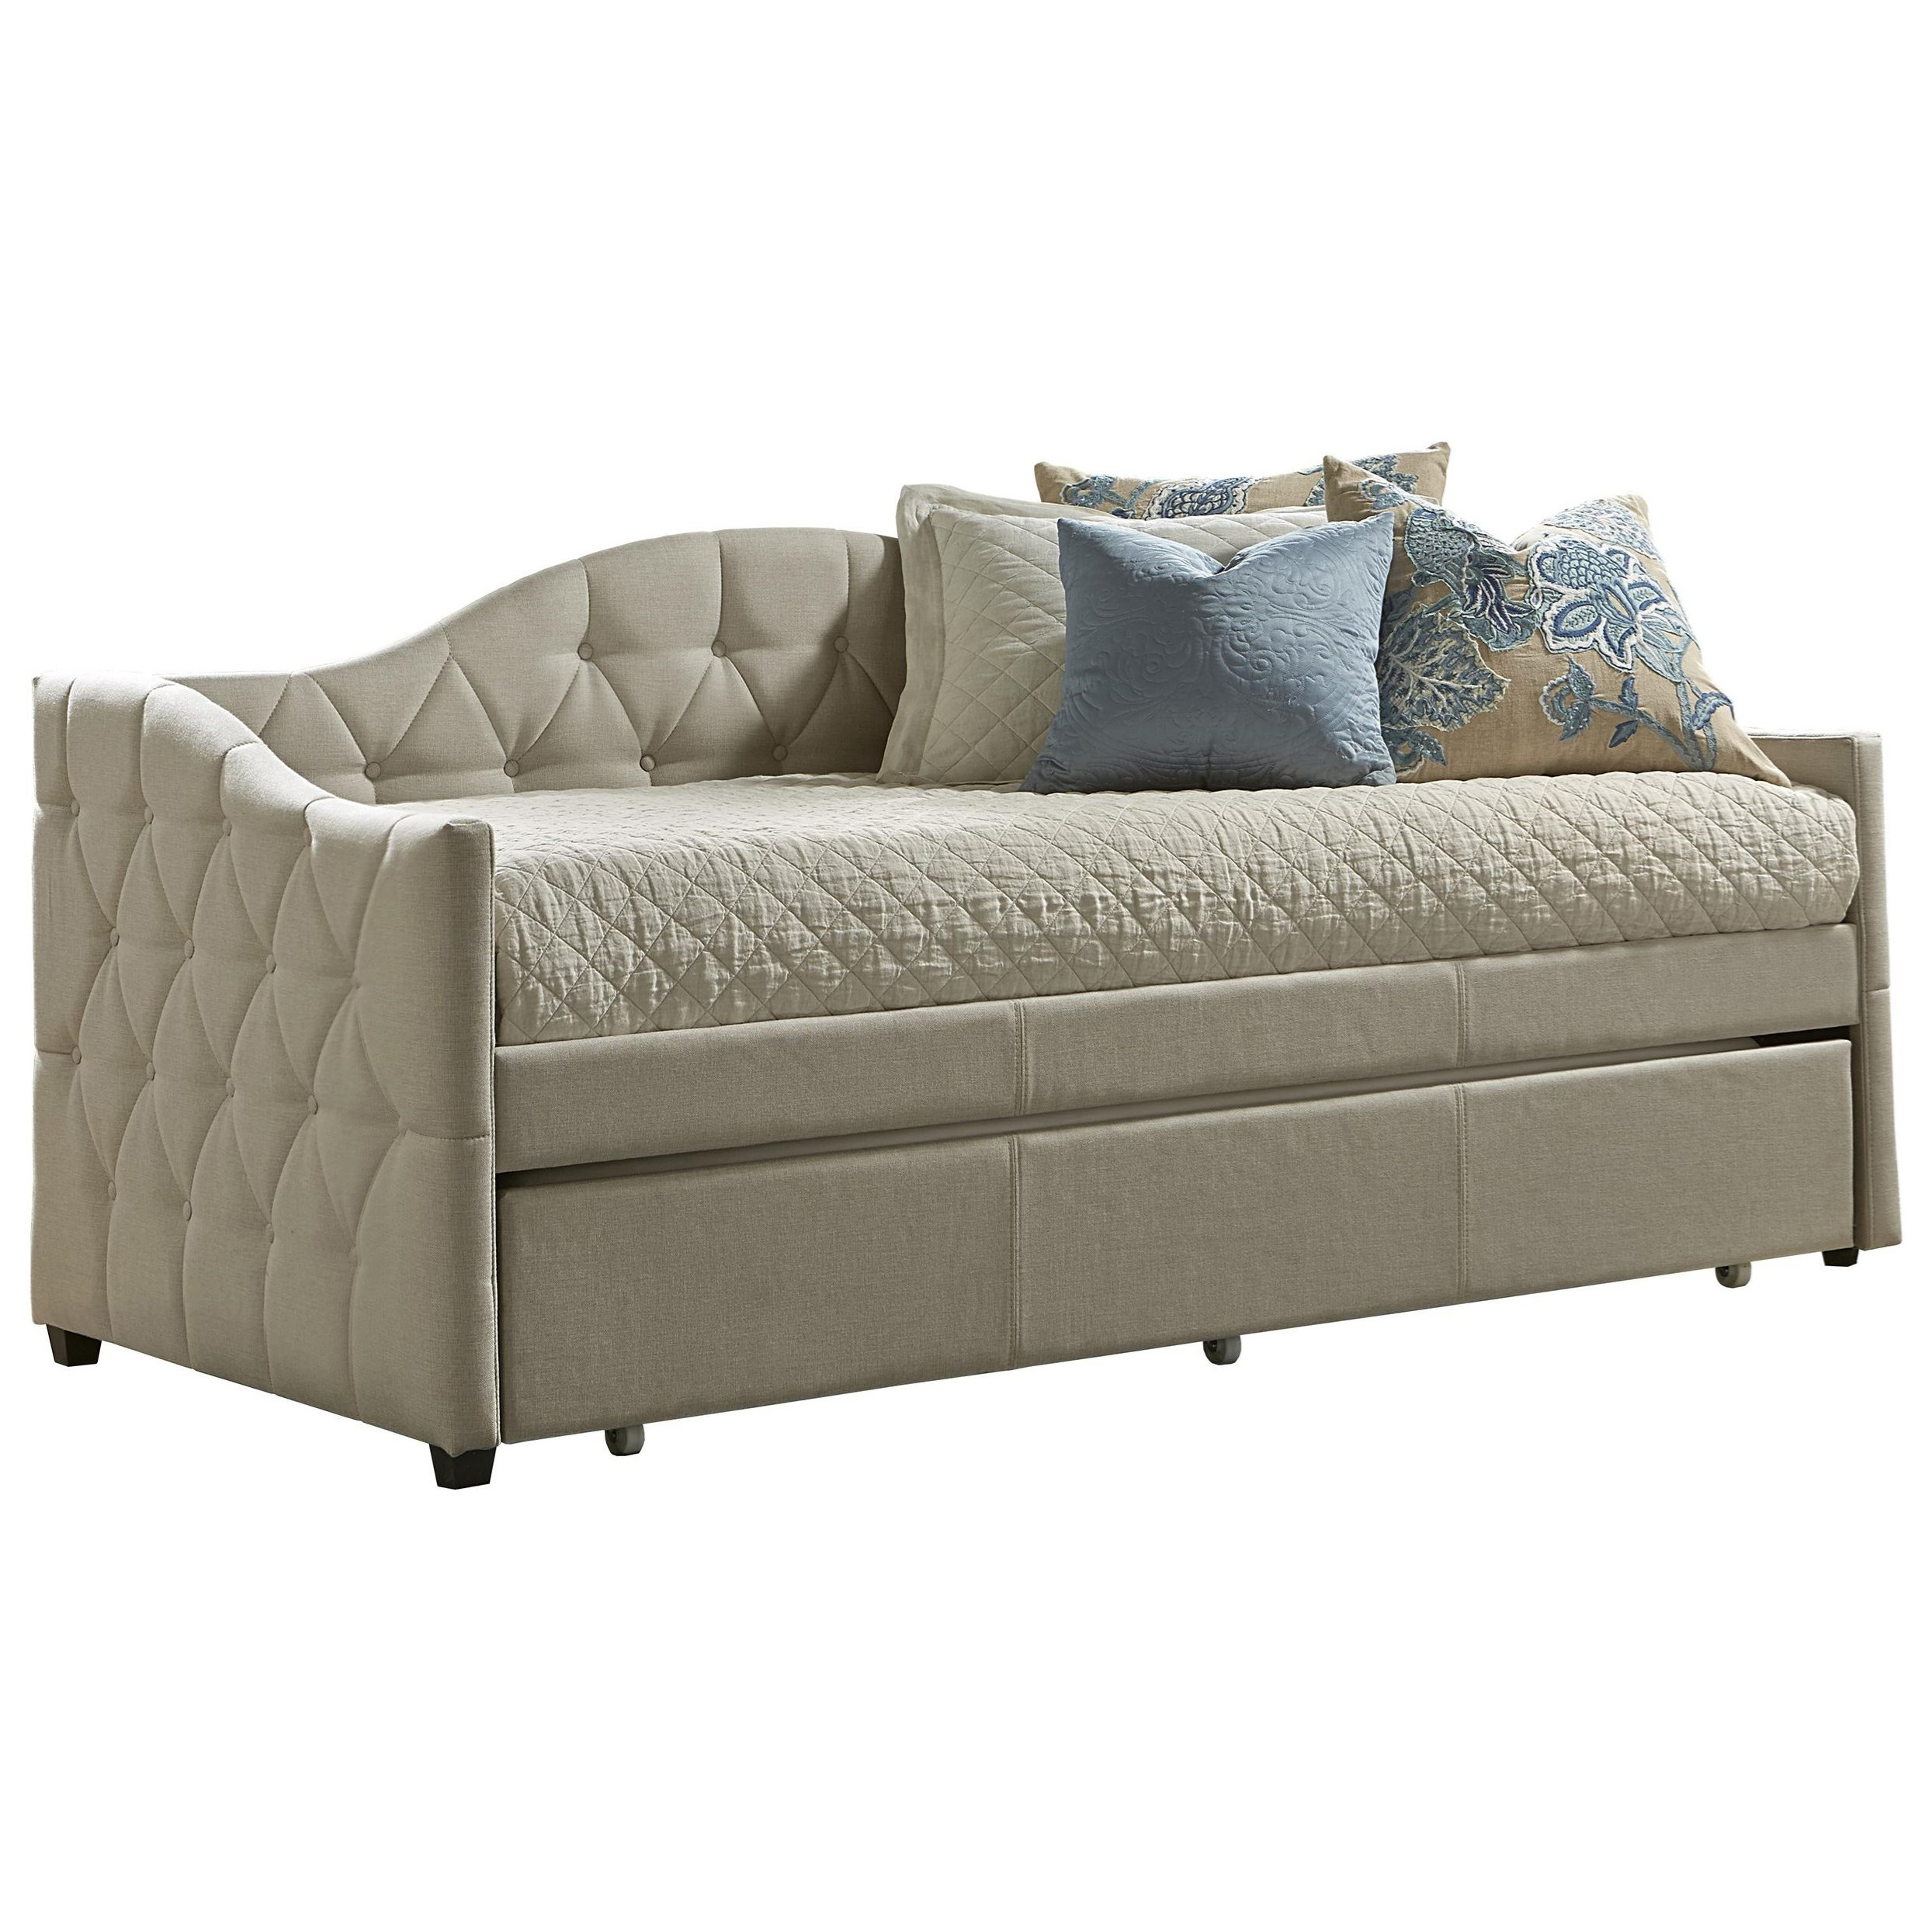 Hillsdale Daybeds Upholstered Daybed w/ Trundle - Item Number: 1125DBT